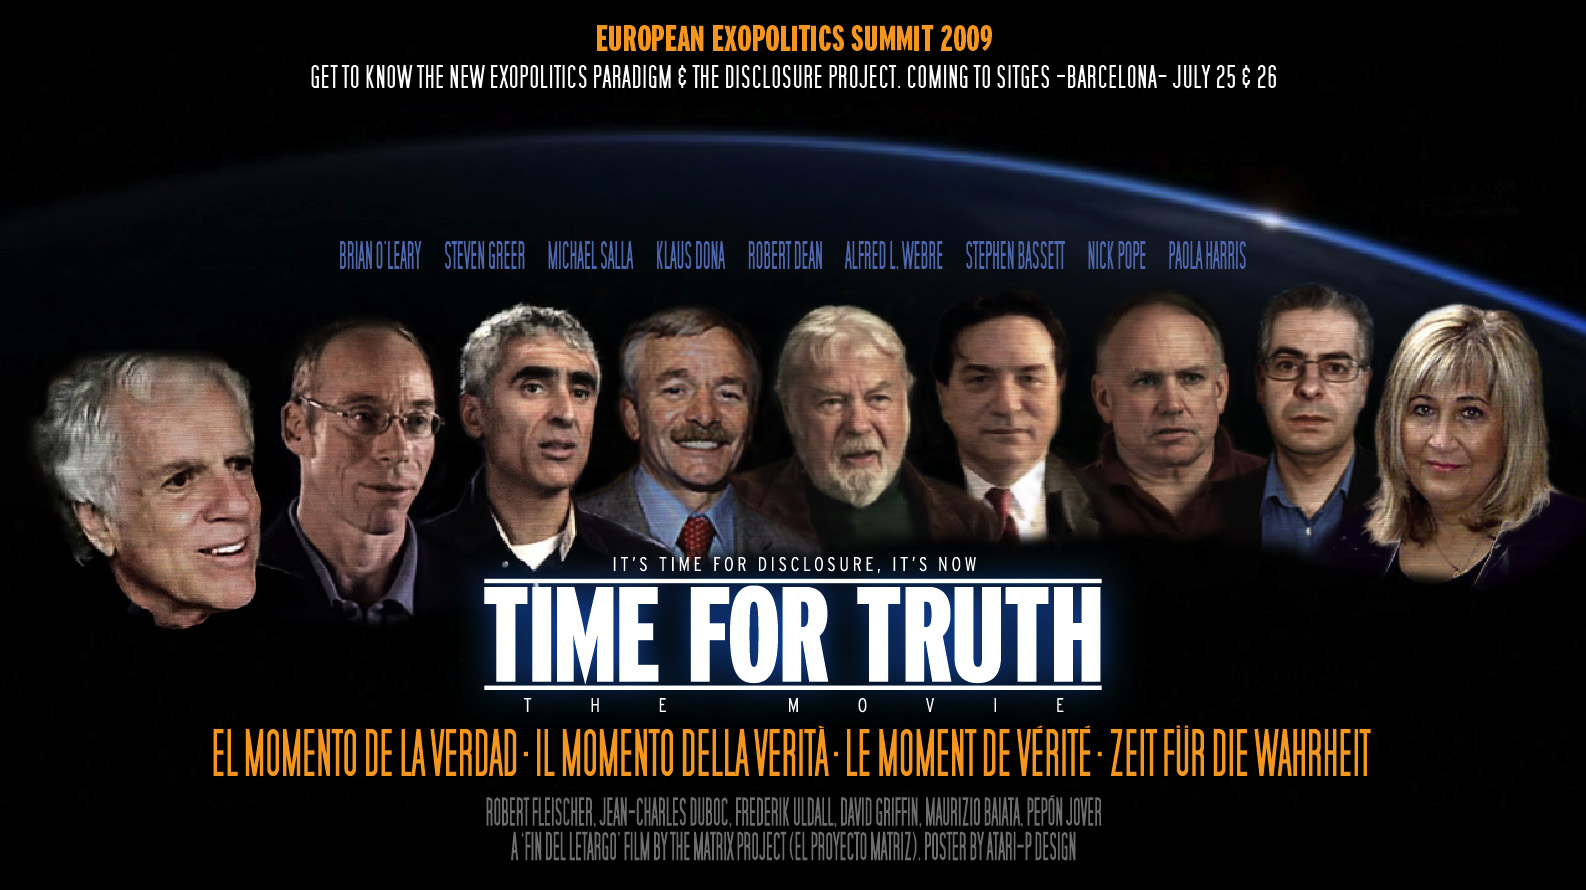 Cumbre Esopolitica poster-oficial-time-for-truth-cumbre-exopolitica